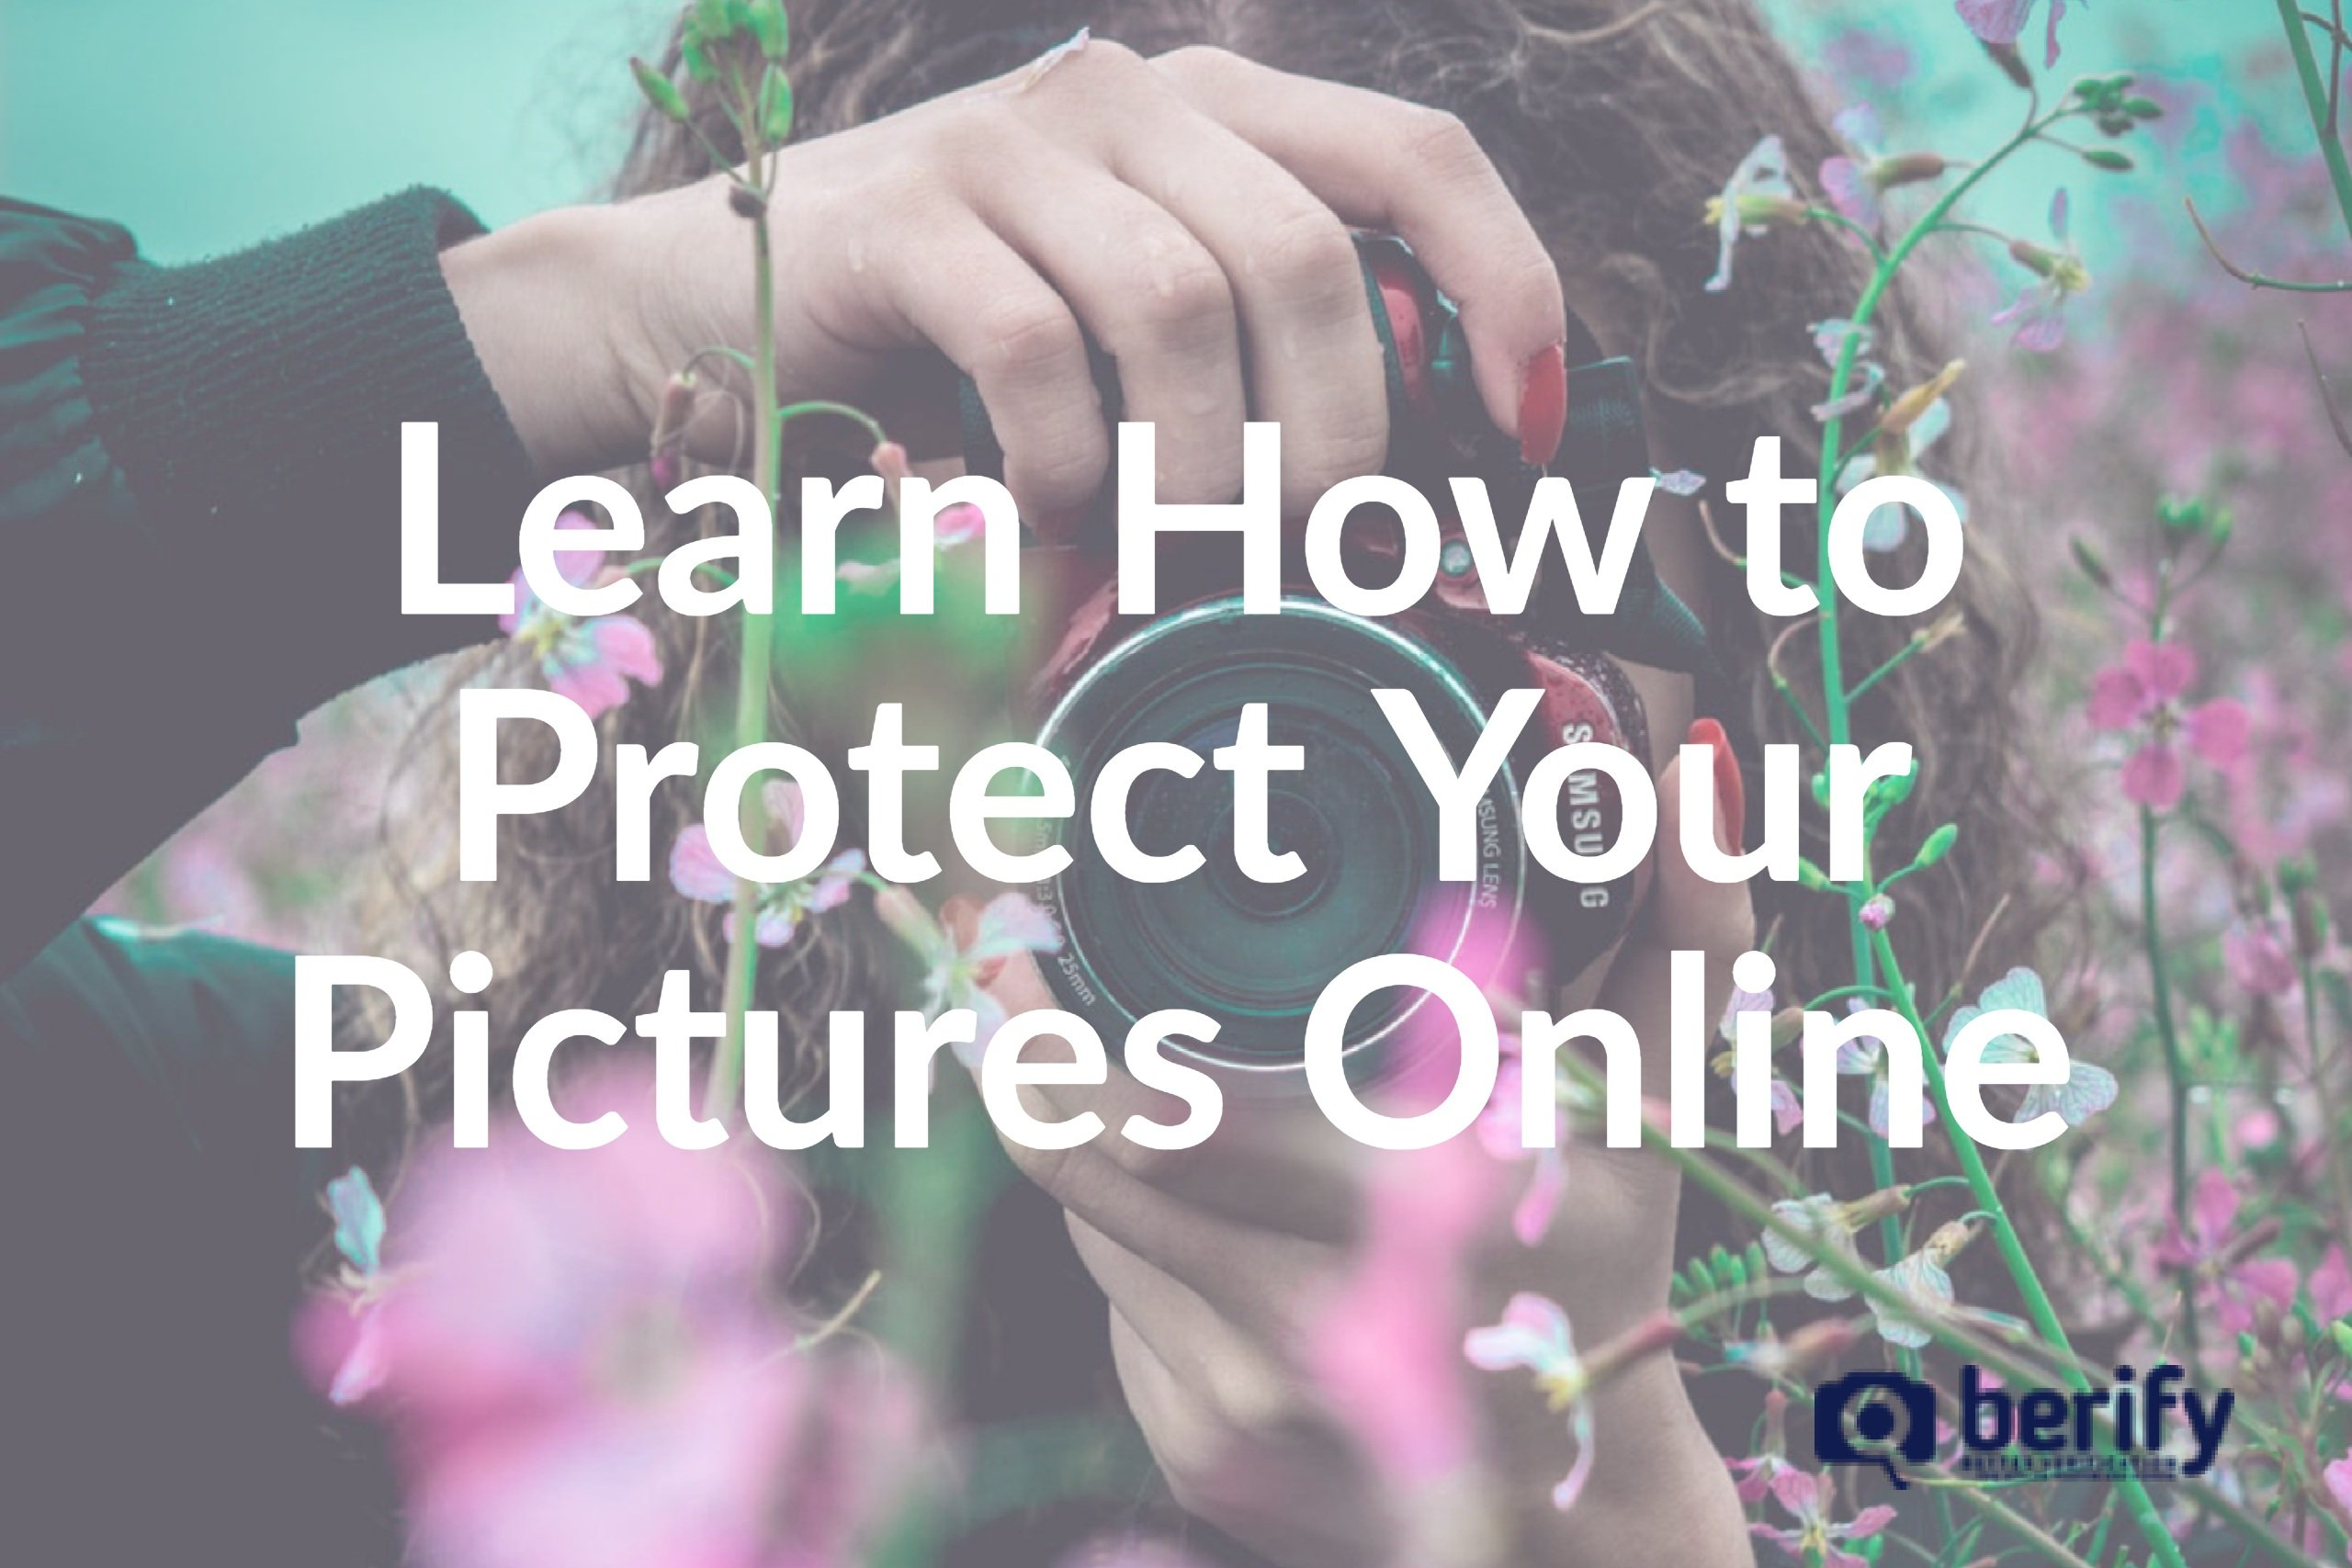 [Photographers] Learn How to Protect Your Pictures Online